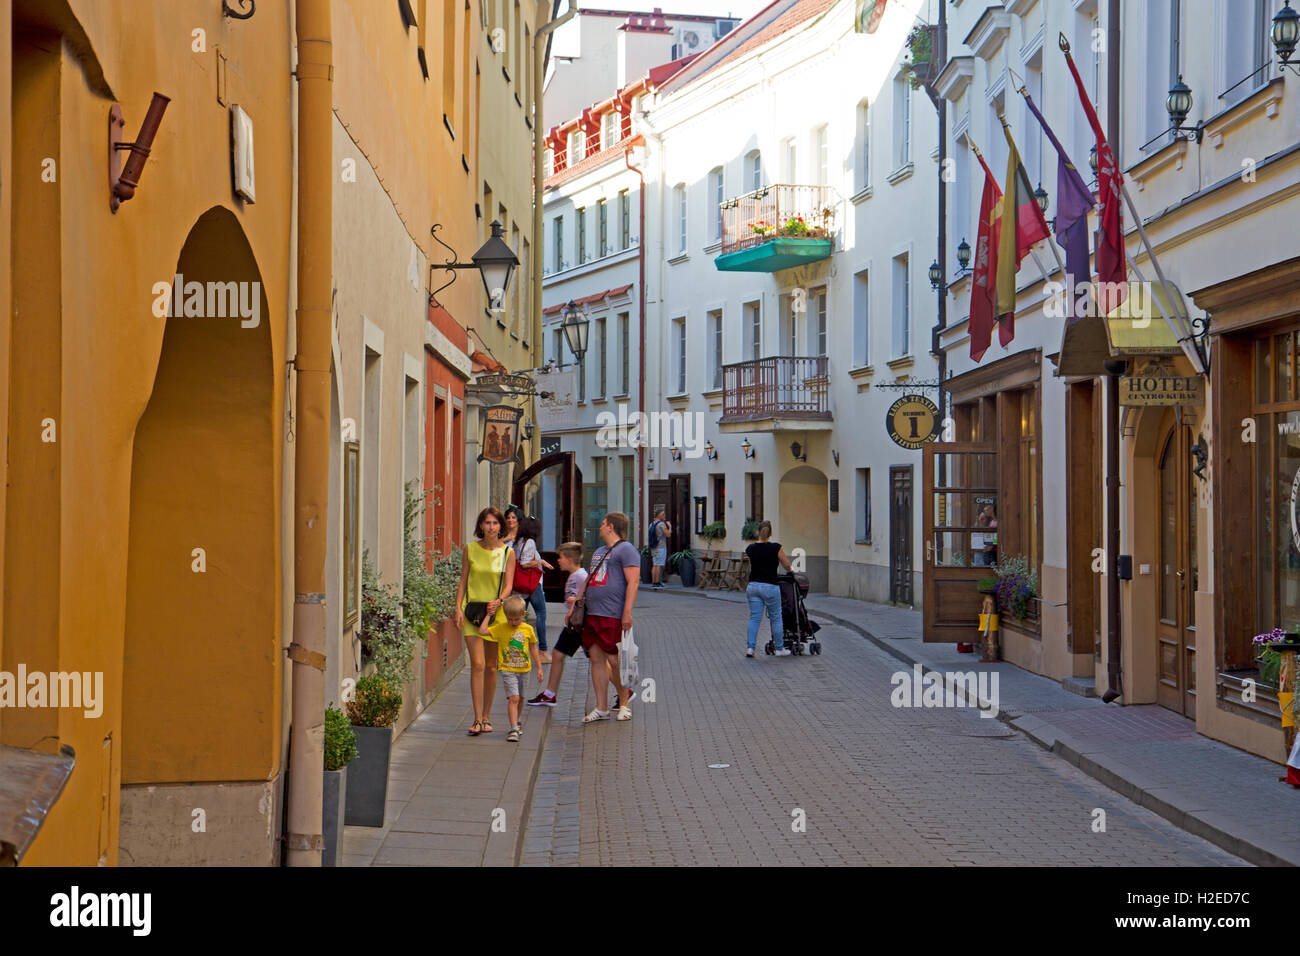 The old town of Vilnius - Stock Image